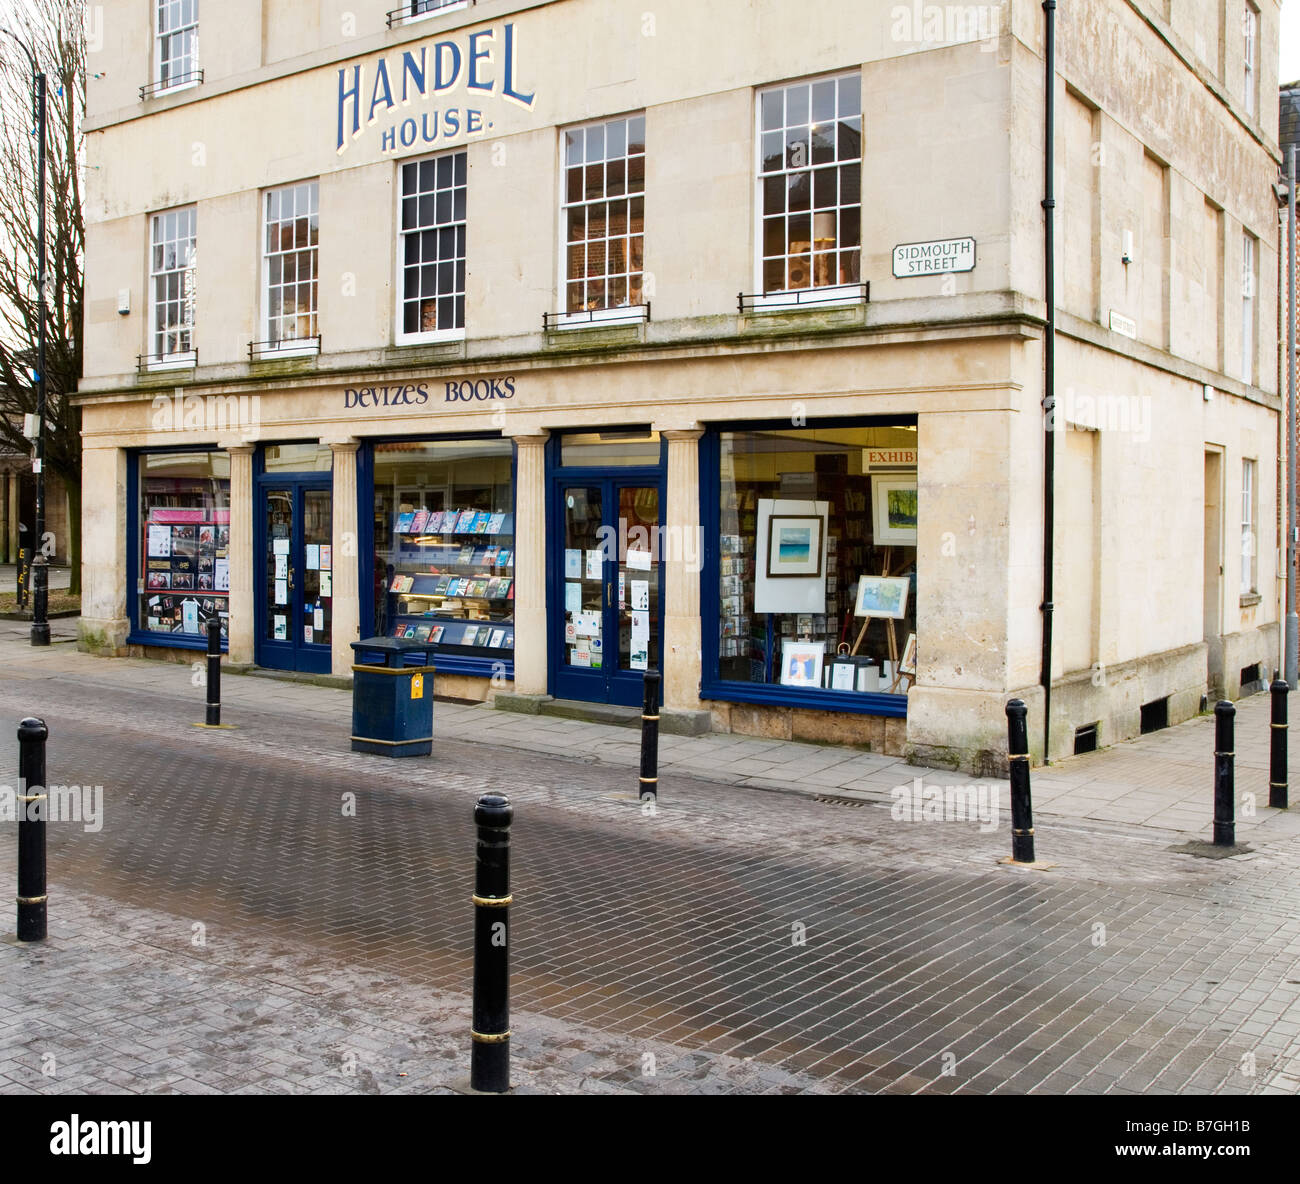 A bookshop on the corner of Sidmouth Street in the typical English market town of Devizes Wiltshire England UK - Stock Image